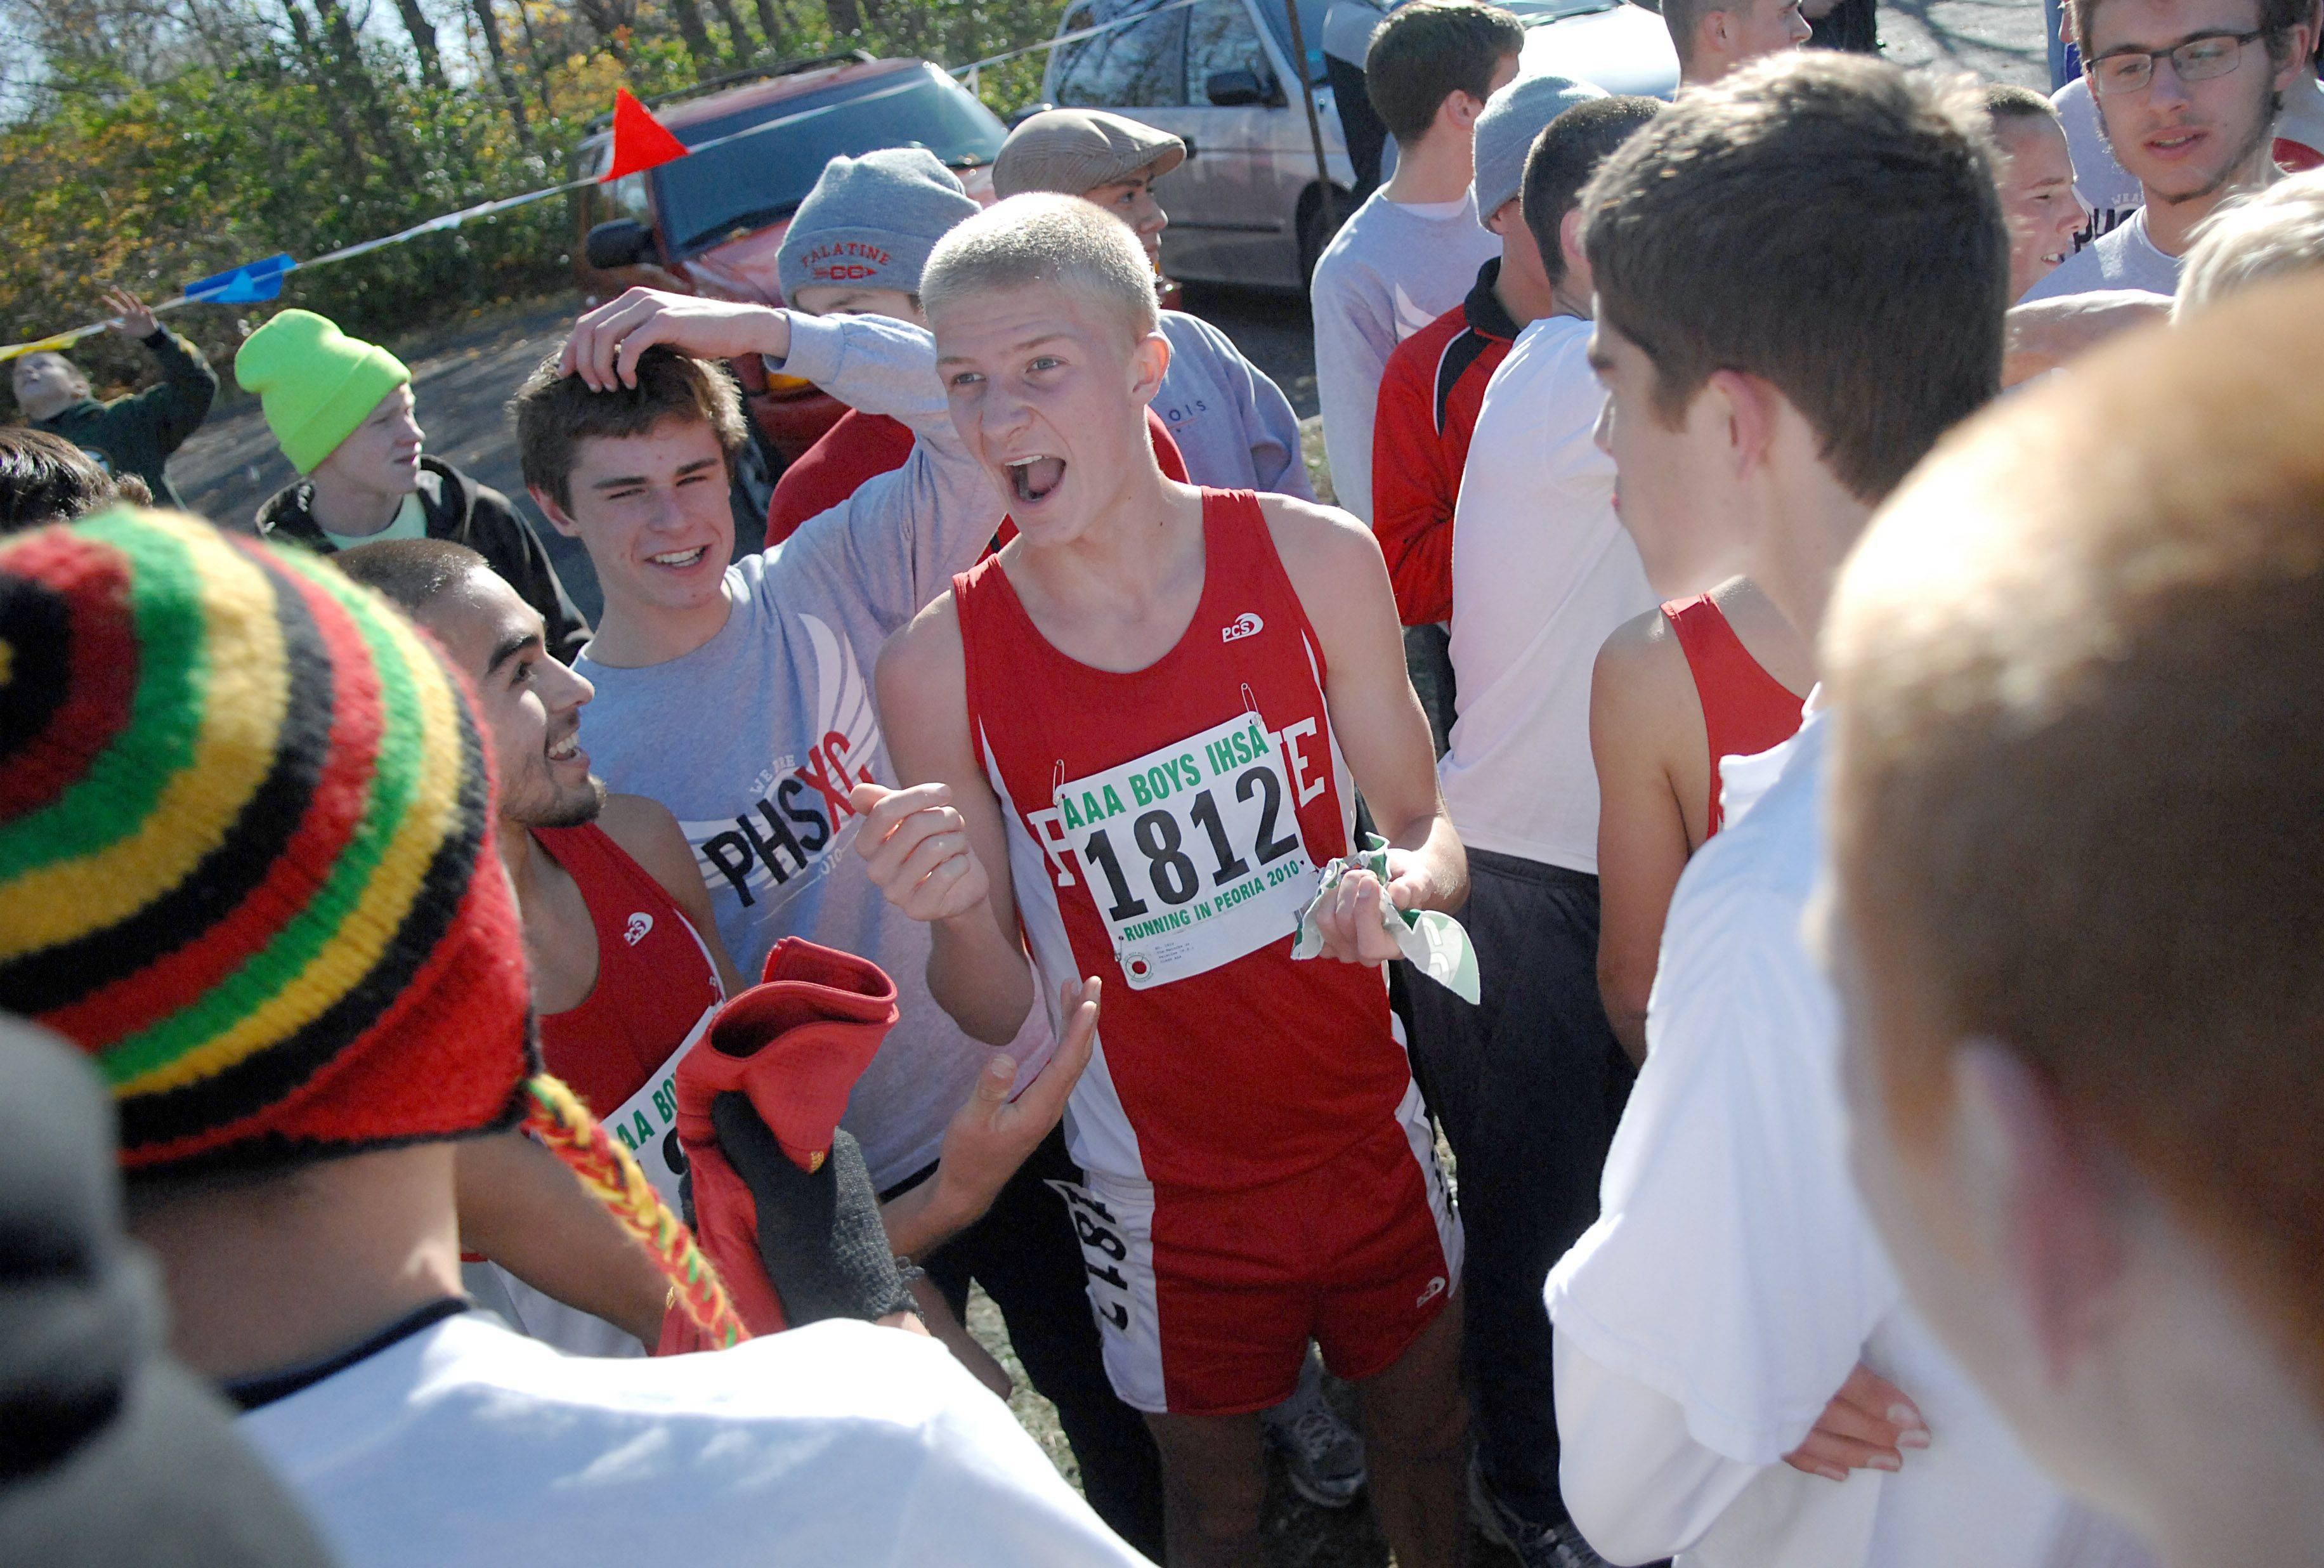 Palatine's Tim Meincke after the 3A class run of the state cross country meet at Detweiller Park in Peoria on Saturday, November 6.